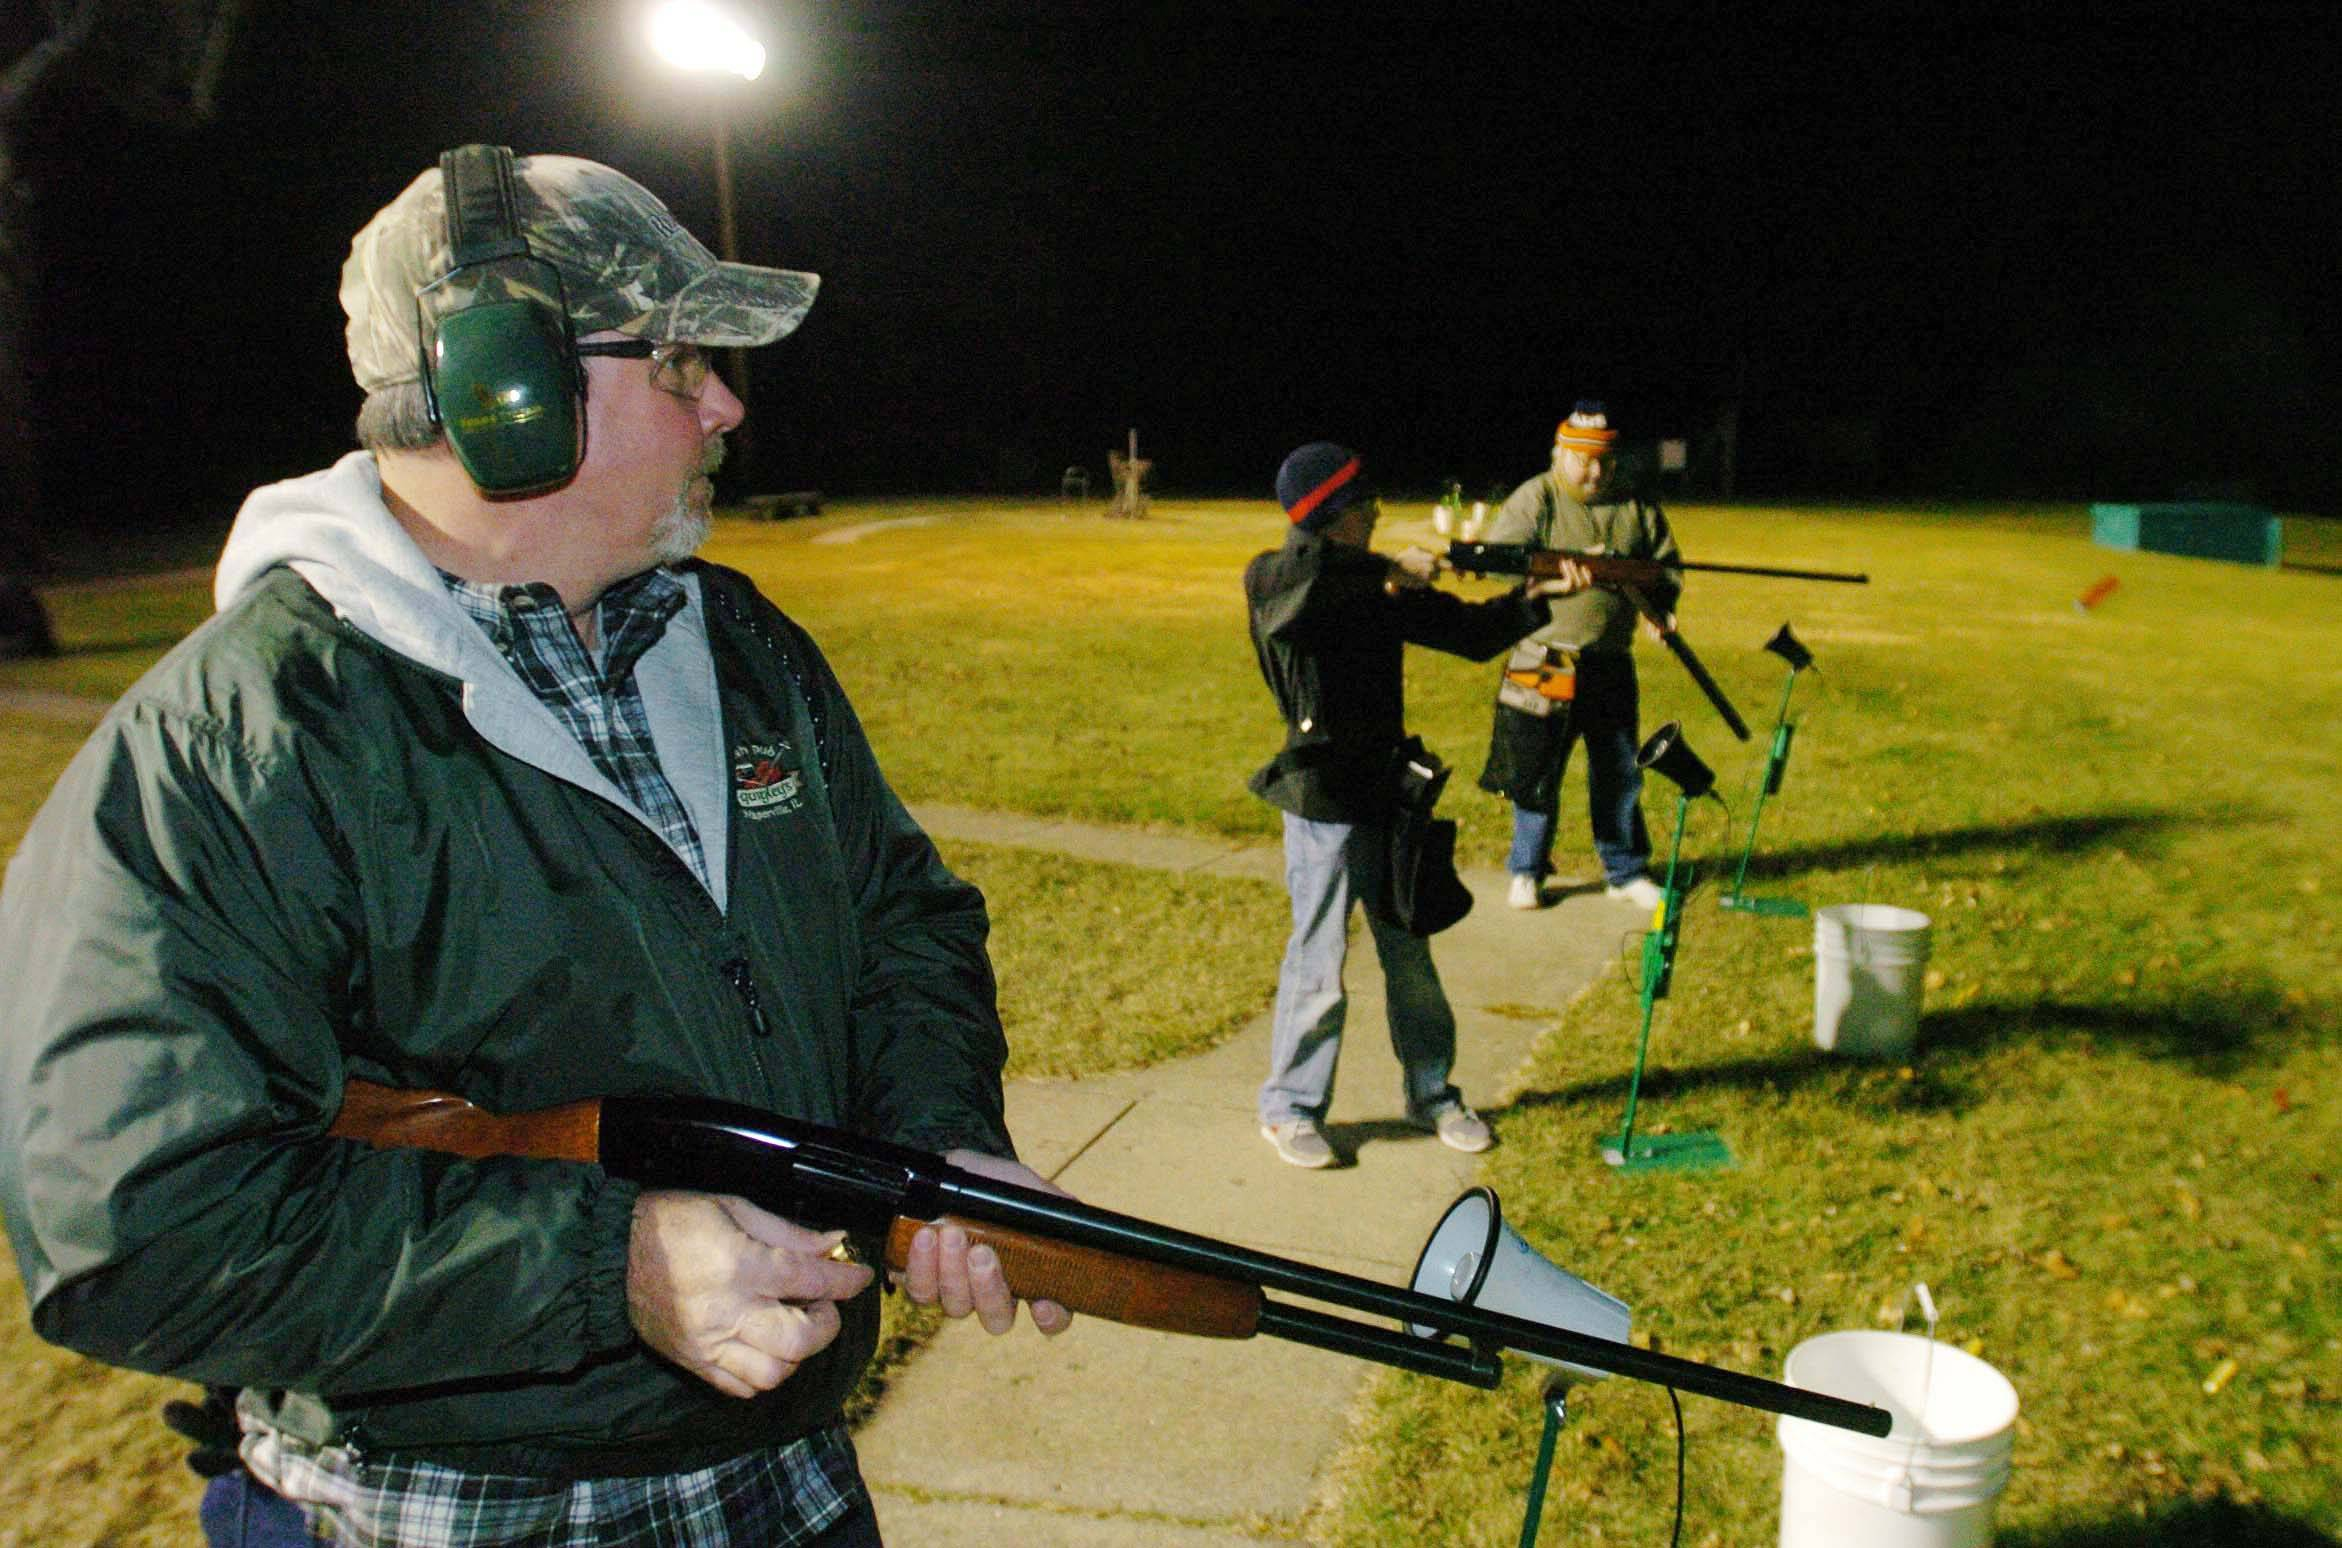 Trapshooting to resume Sunday at Sportsman's Park in Naperville